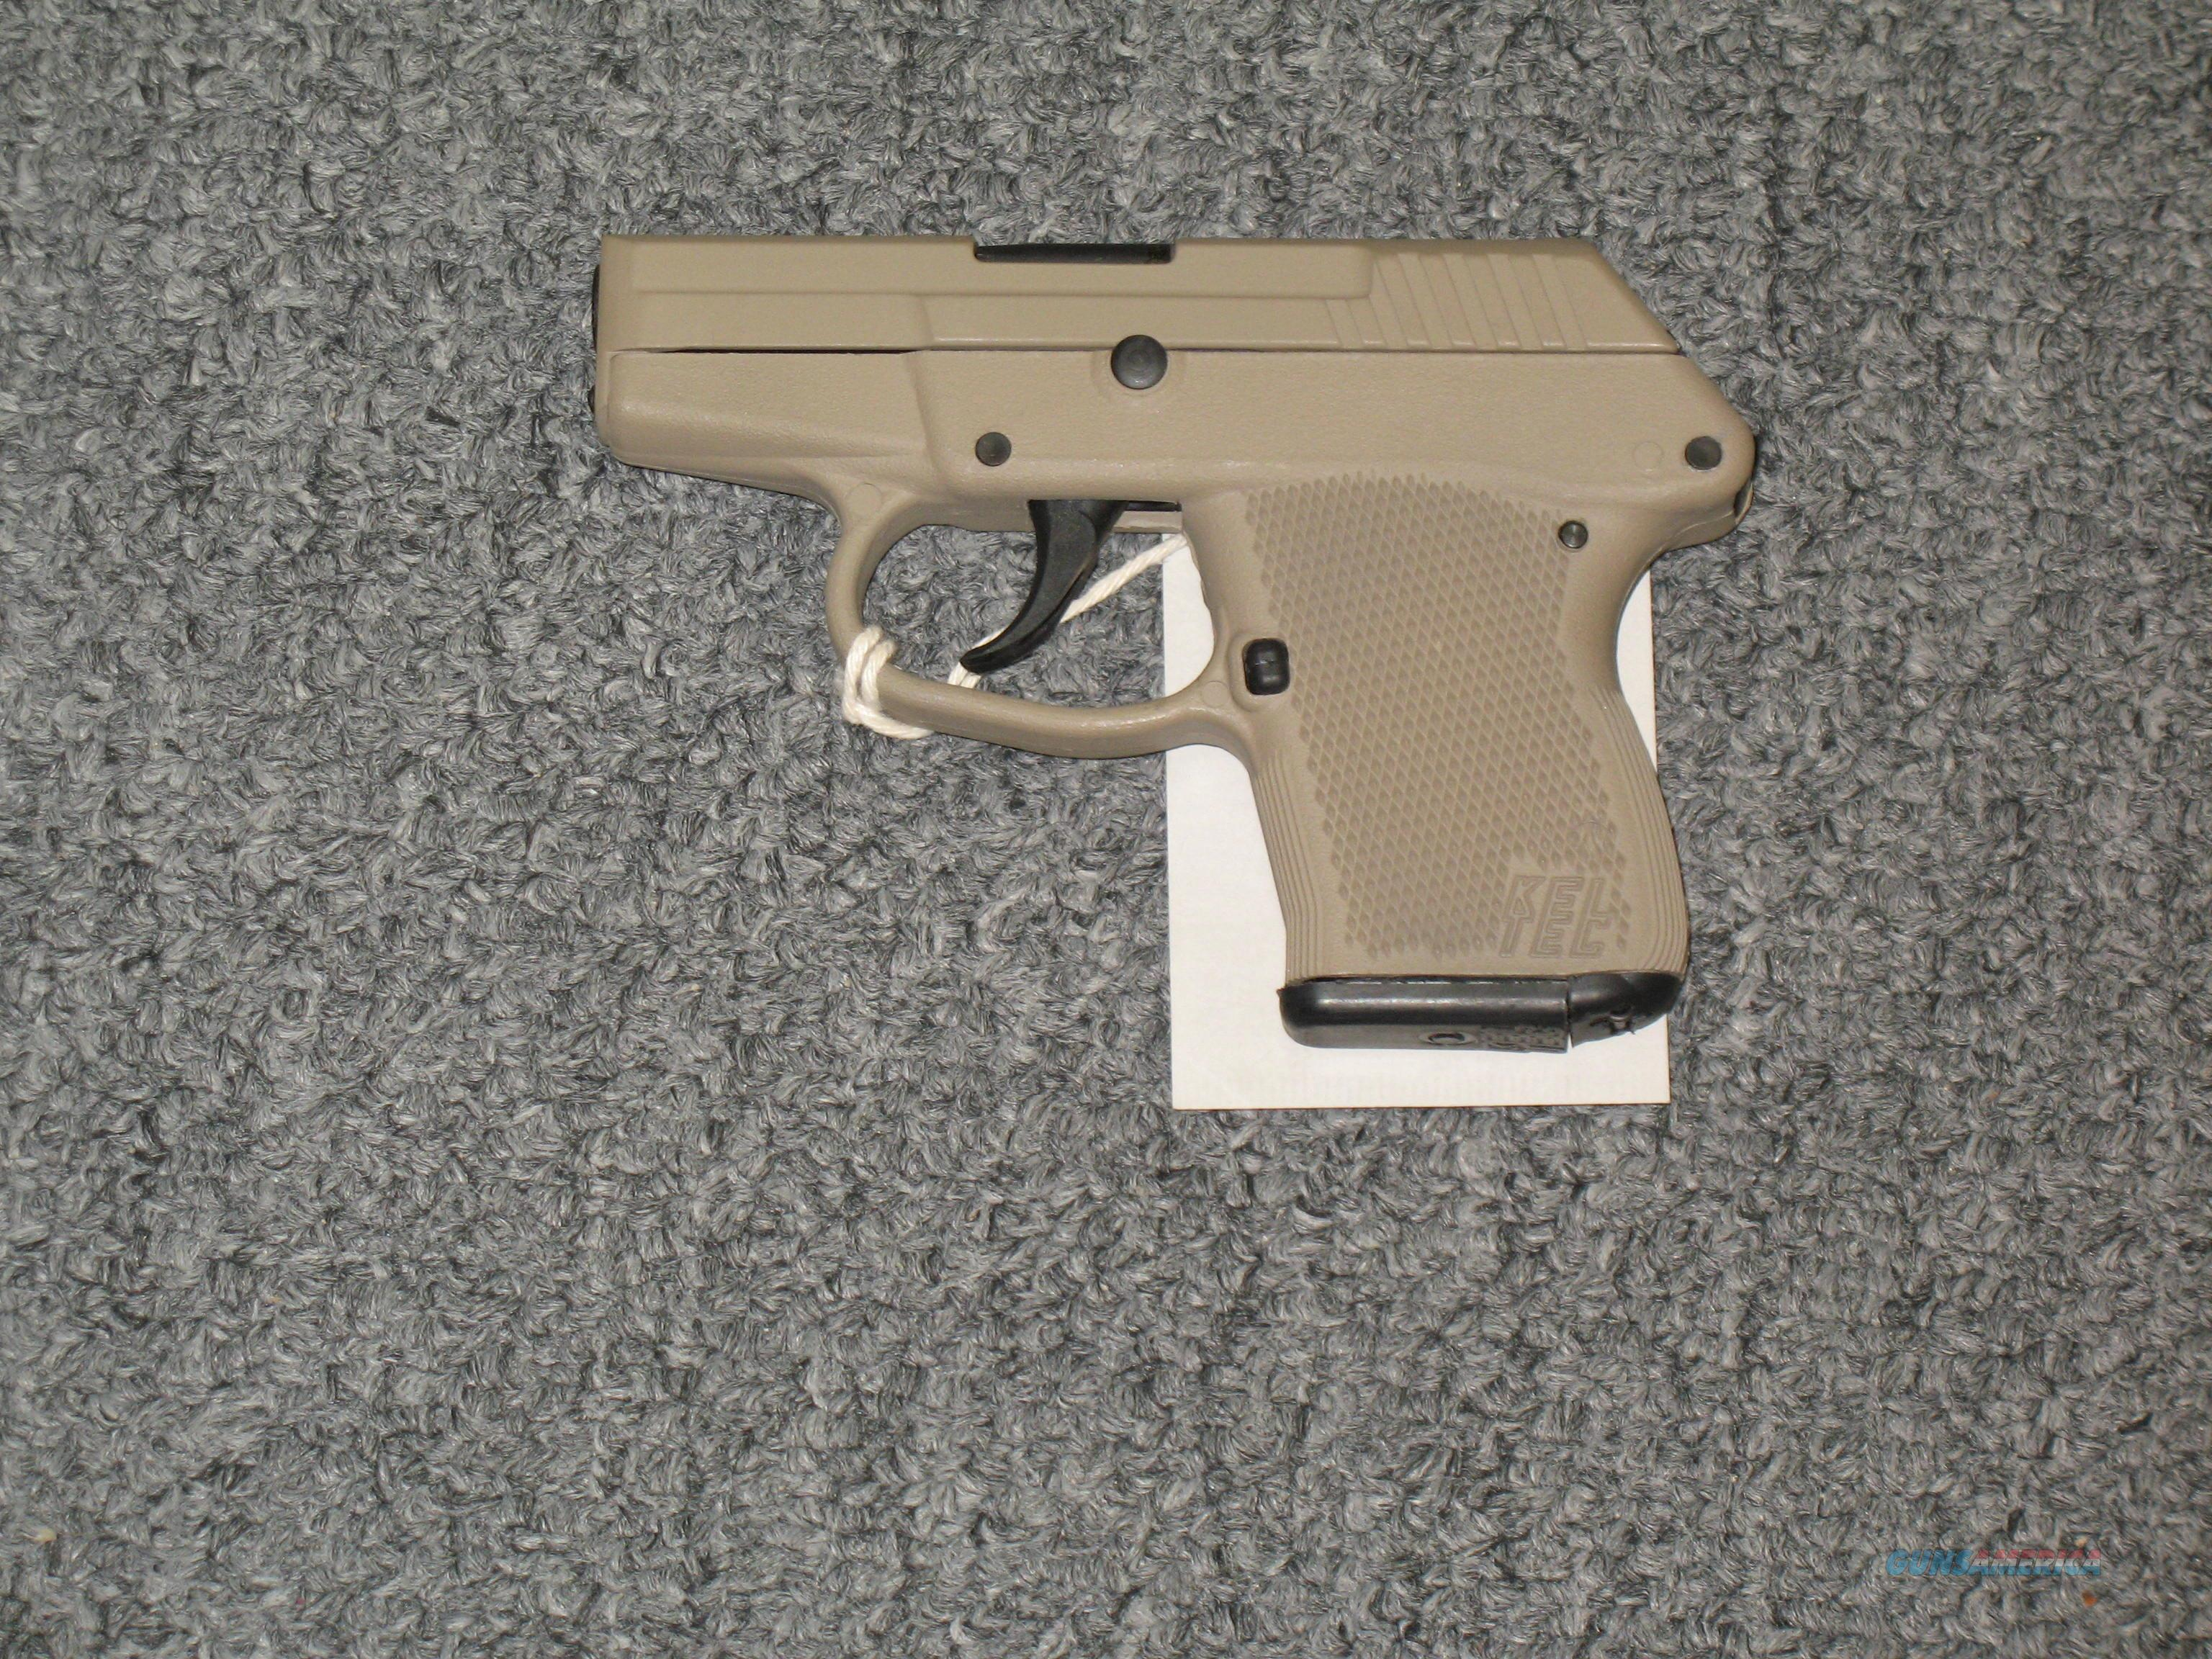 P-32  w/tan slide and frame  Guns > Pistols > Kel-Tec Pistols > Pocket Pistol Type